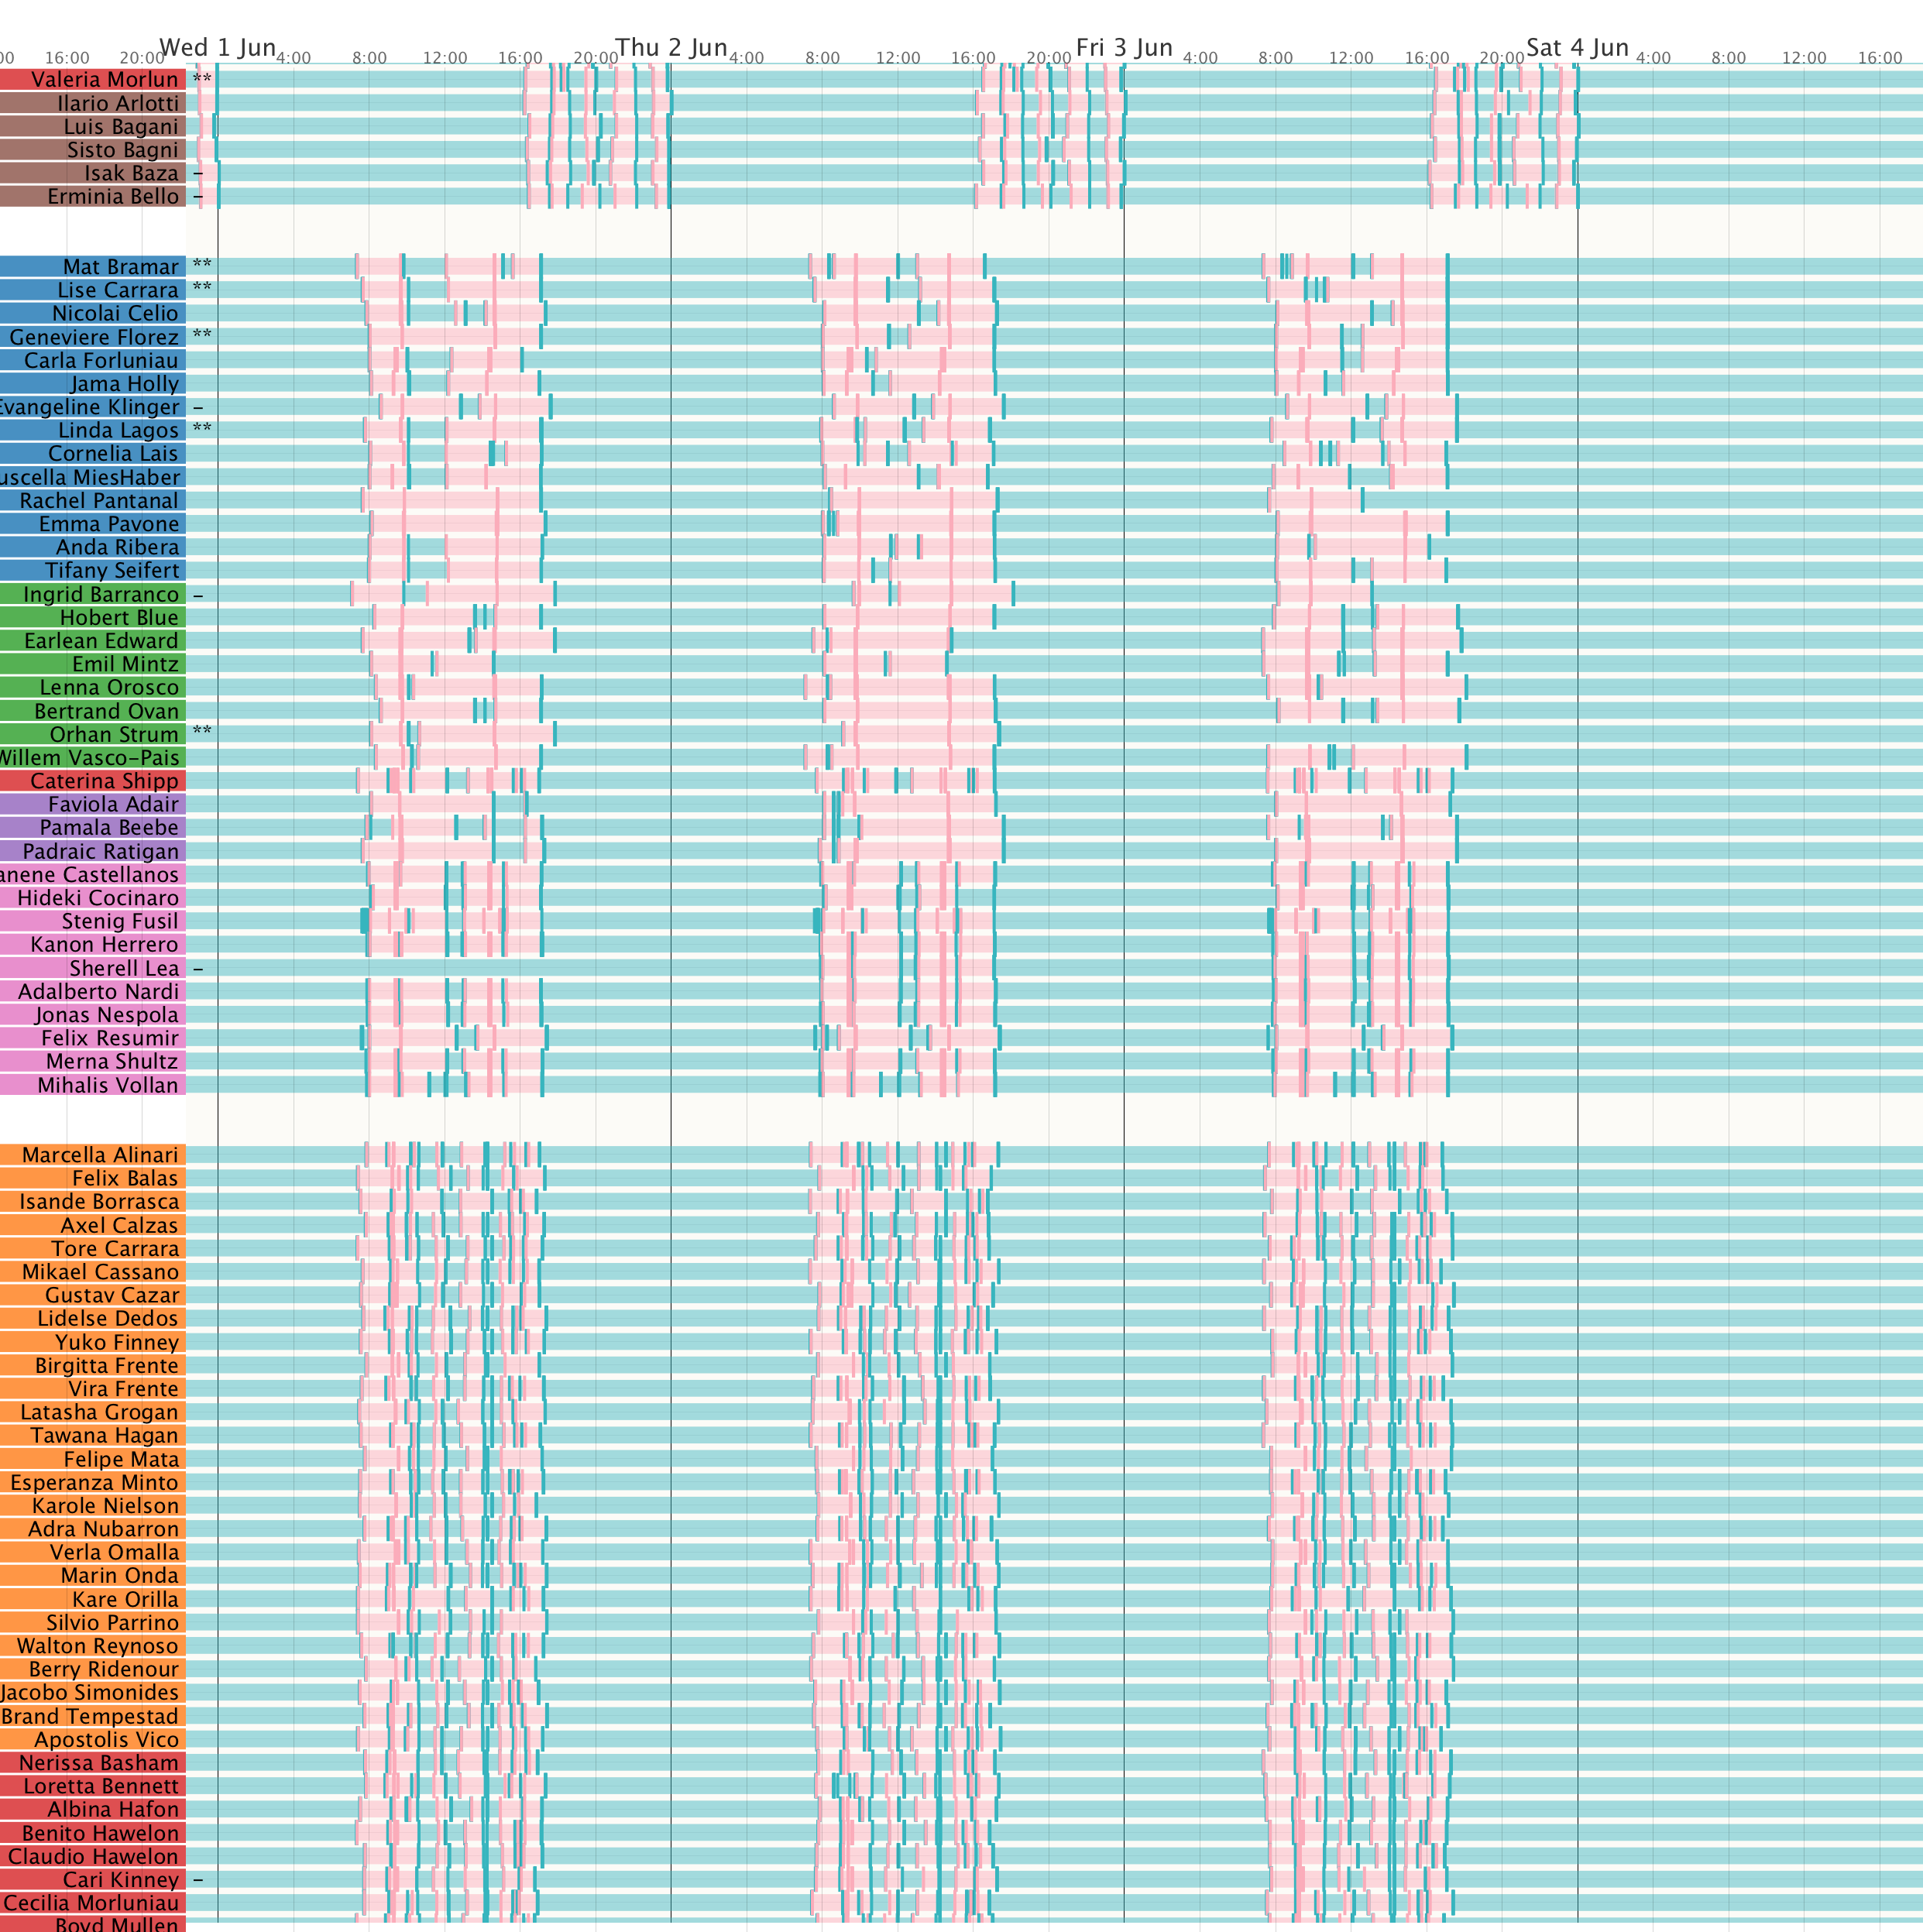 Figure 2.  Zoomed in detail of prox card entry view showing typical patterns during the day. Employees symbolised with a '–' indicate note attached to their record and '**' a note with an alert identifying issue of concern.  (click image for full size).